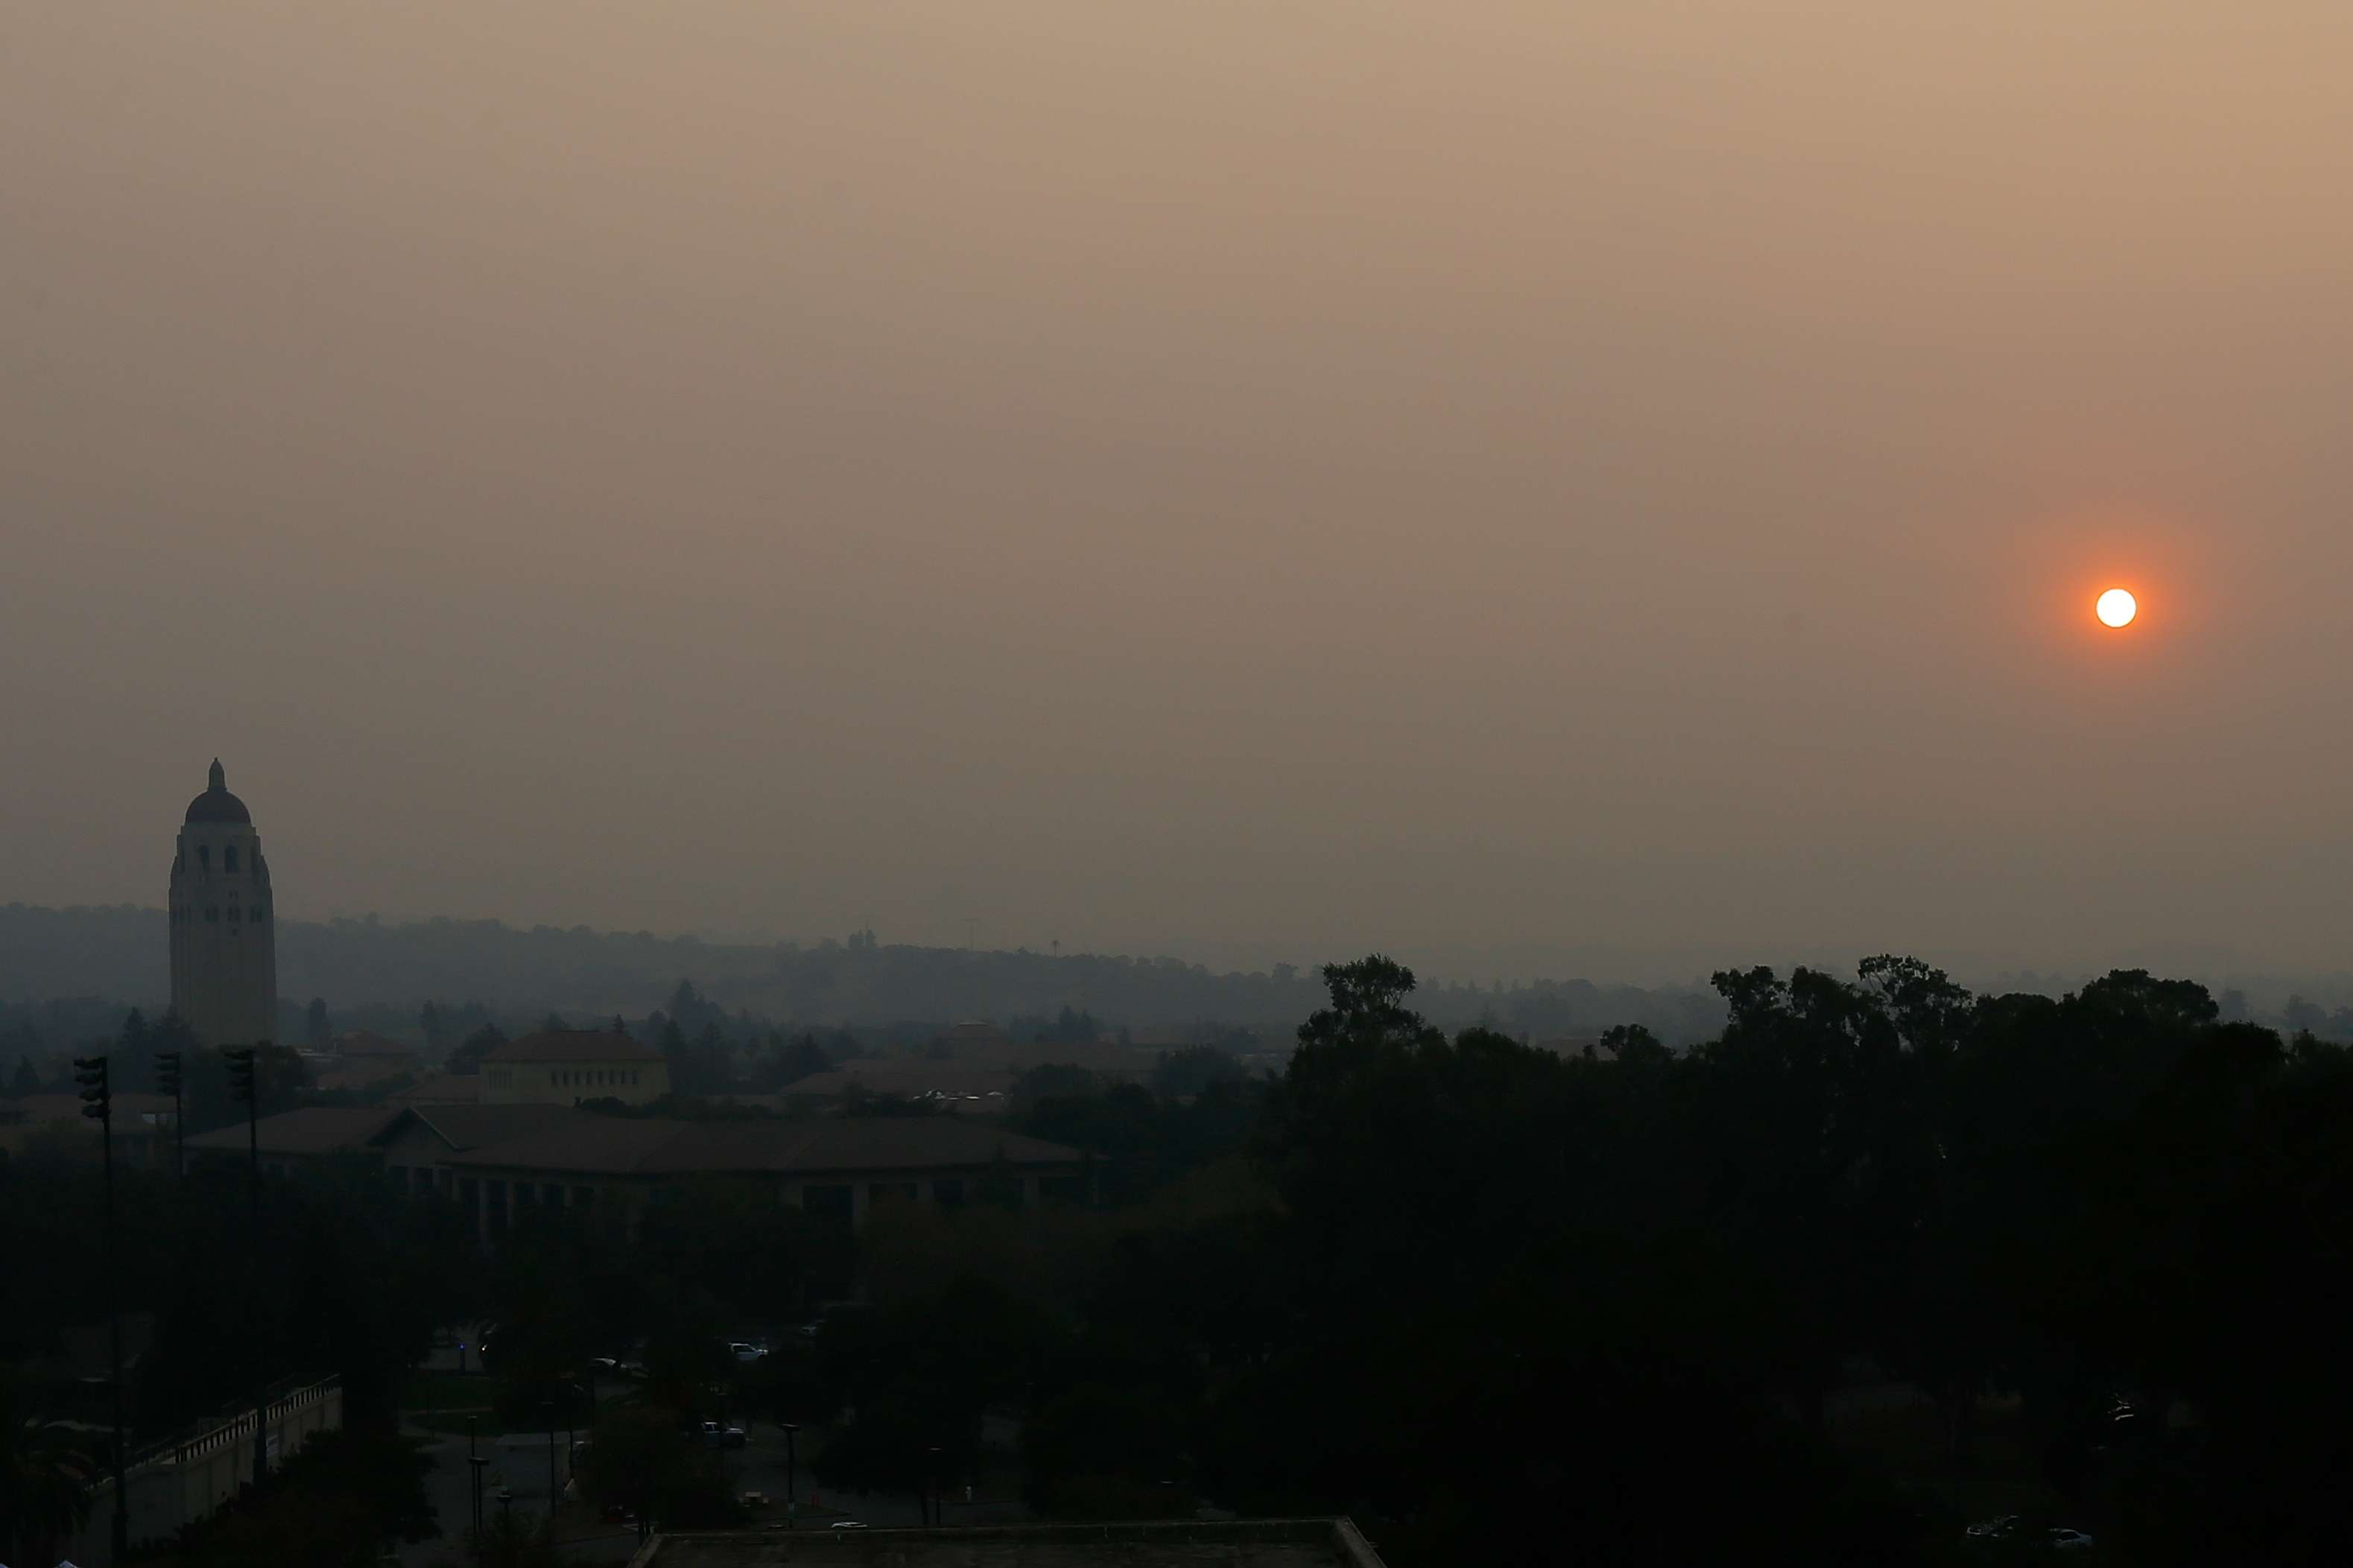 Stanford University obscured by wildfire smoke